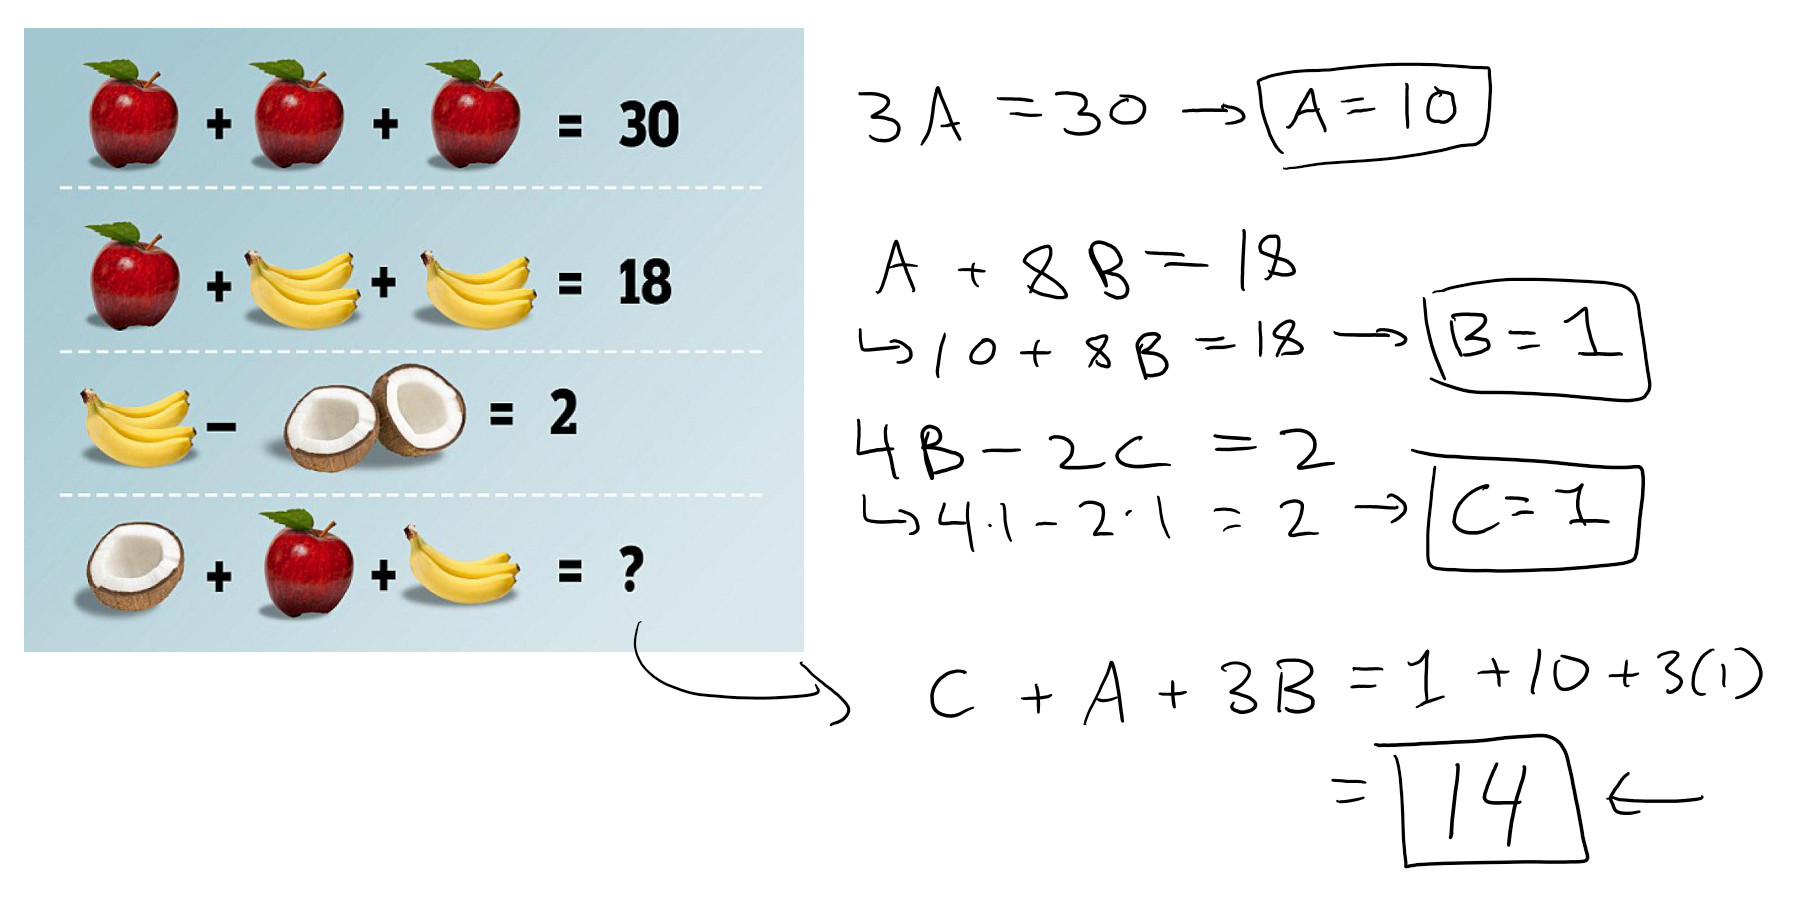 Fruit Math Problem (SOLUTION) | Puzzles | Math Easy Solutions